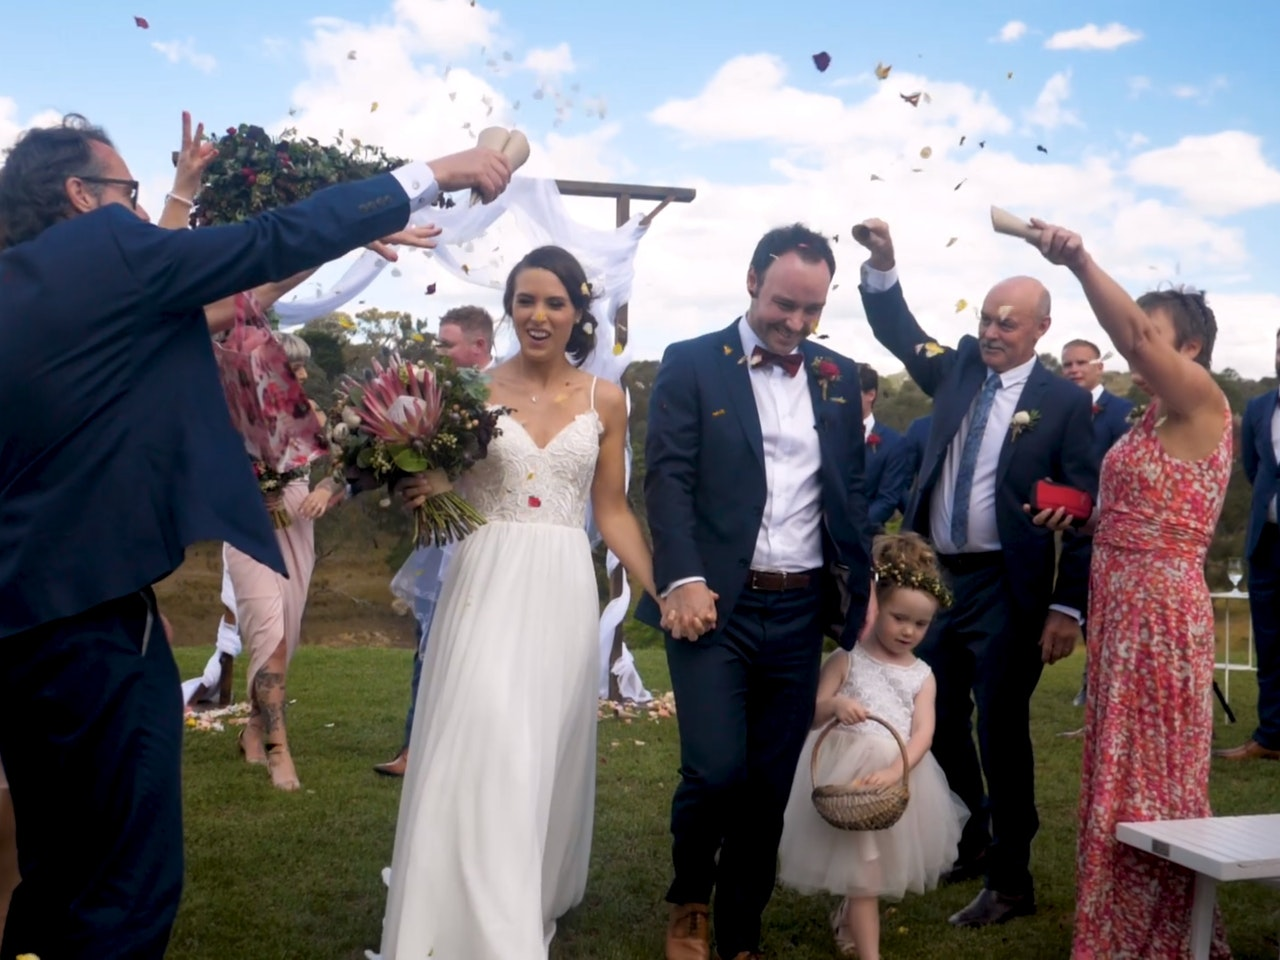 Milly + Brendan - A few clips from my cousin's wedding day